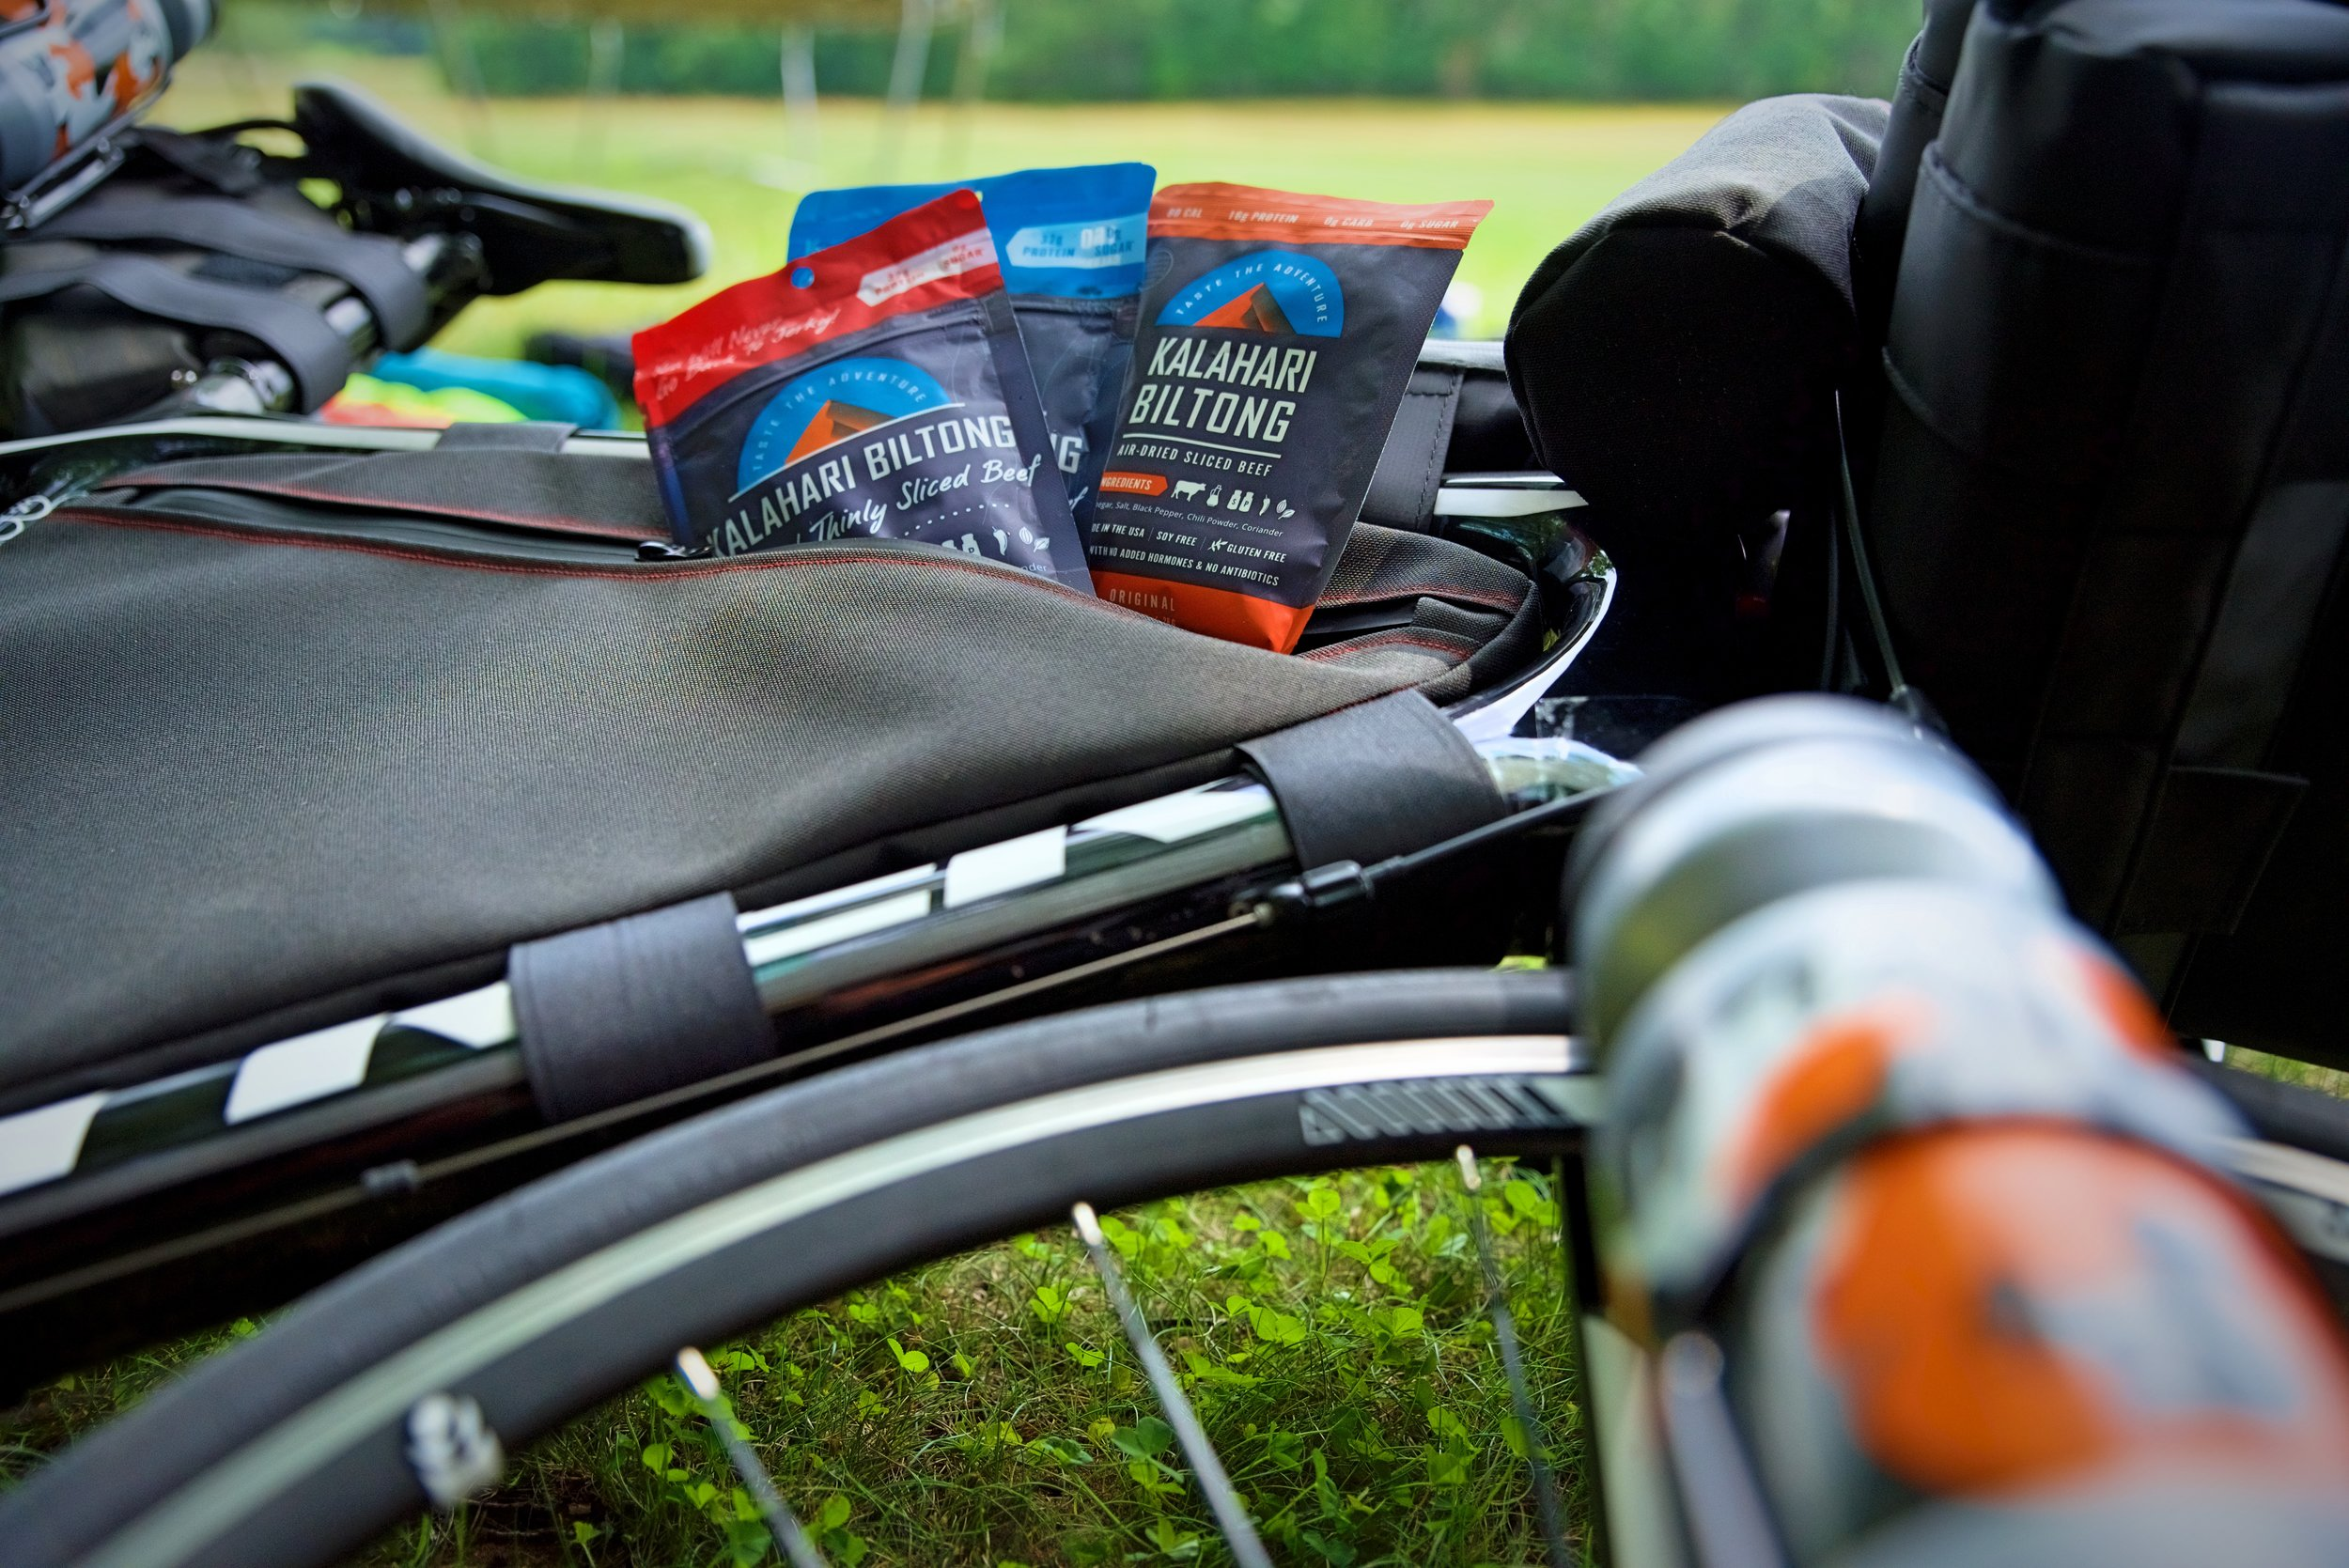 By weight, Kalahari Biltong is probably one of the most nutrition dense foods you could bring when bike camping.